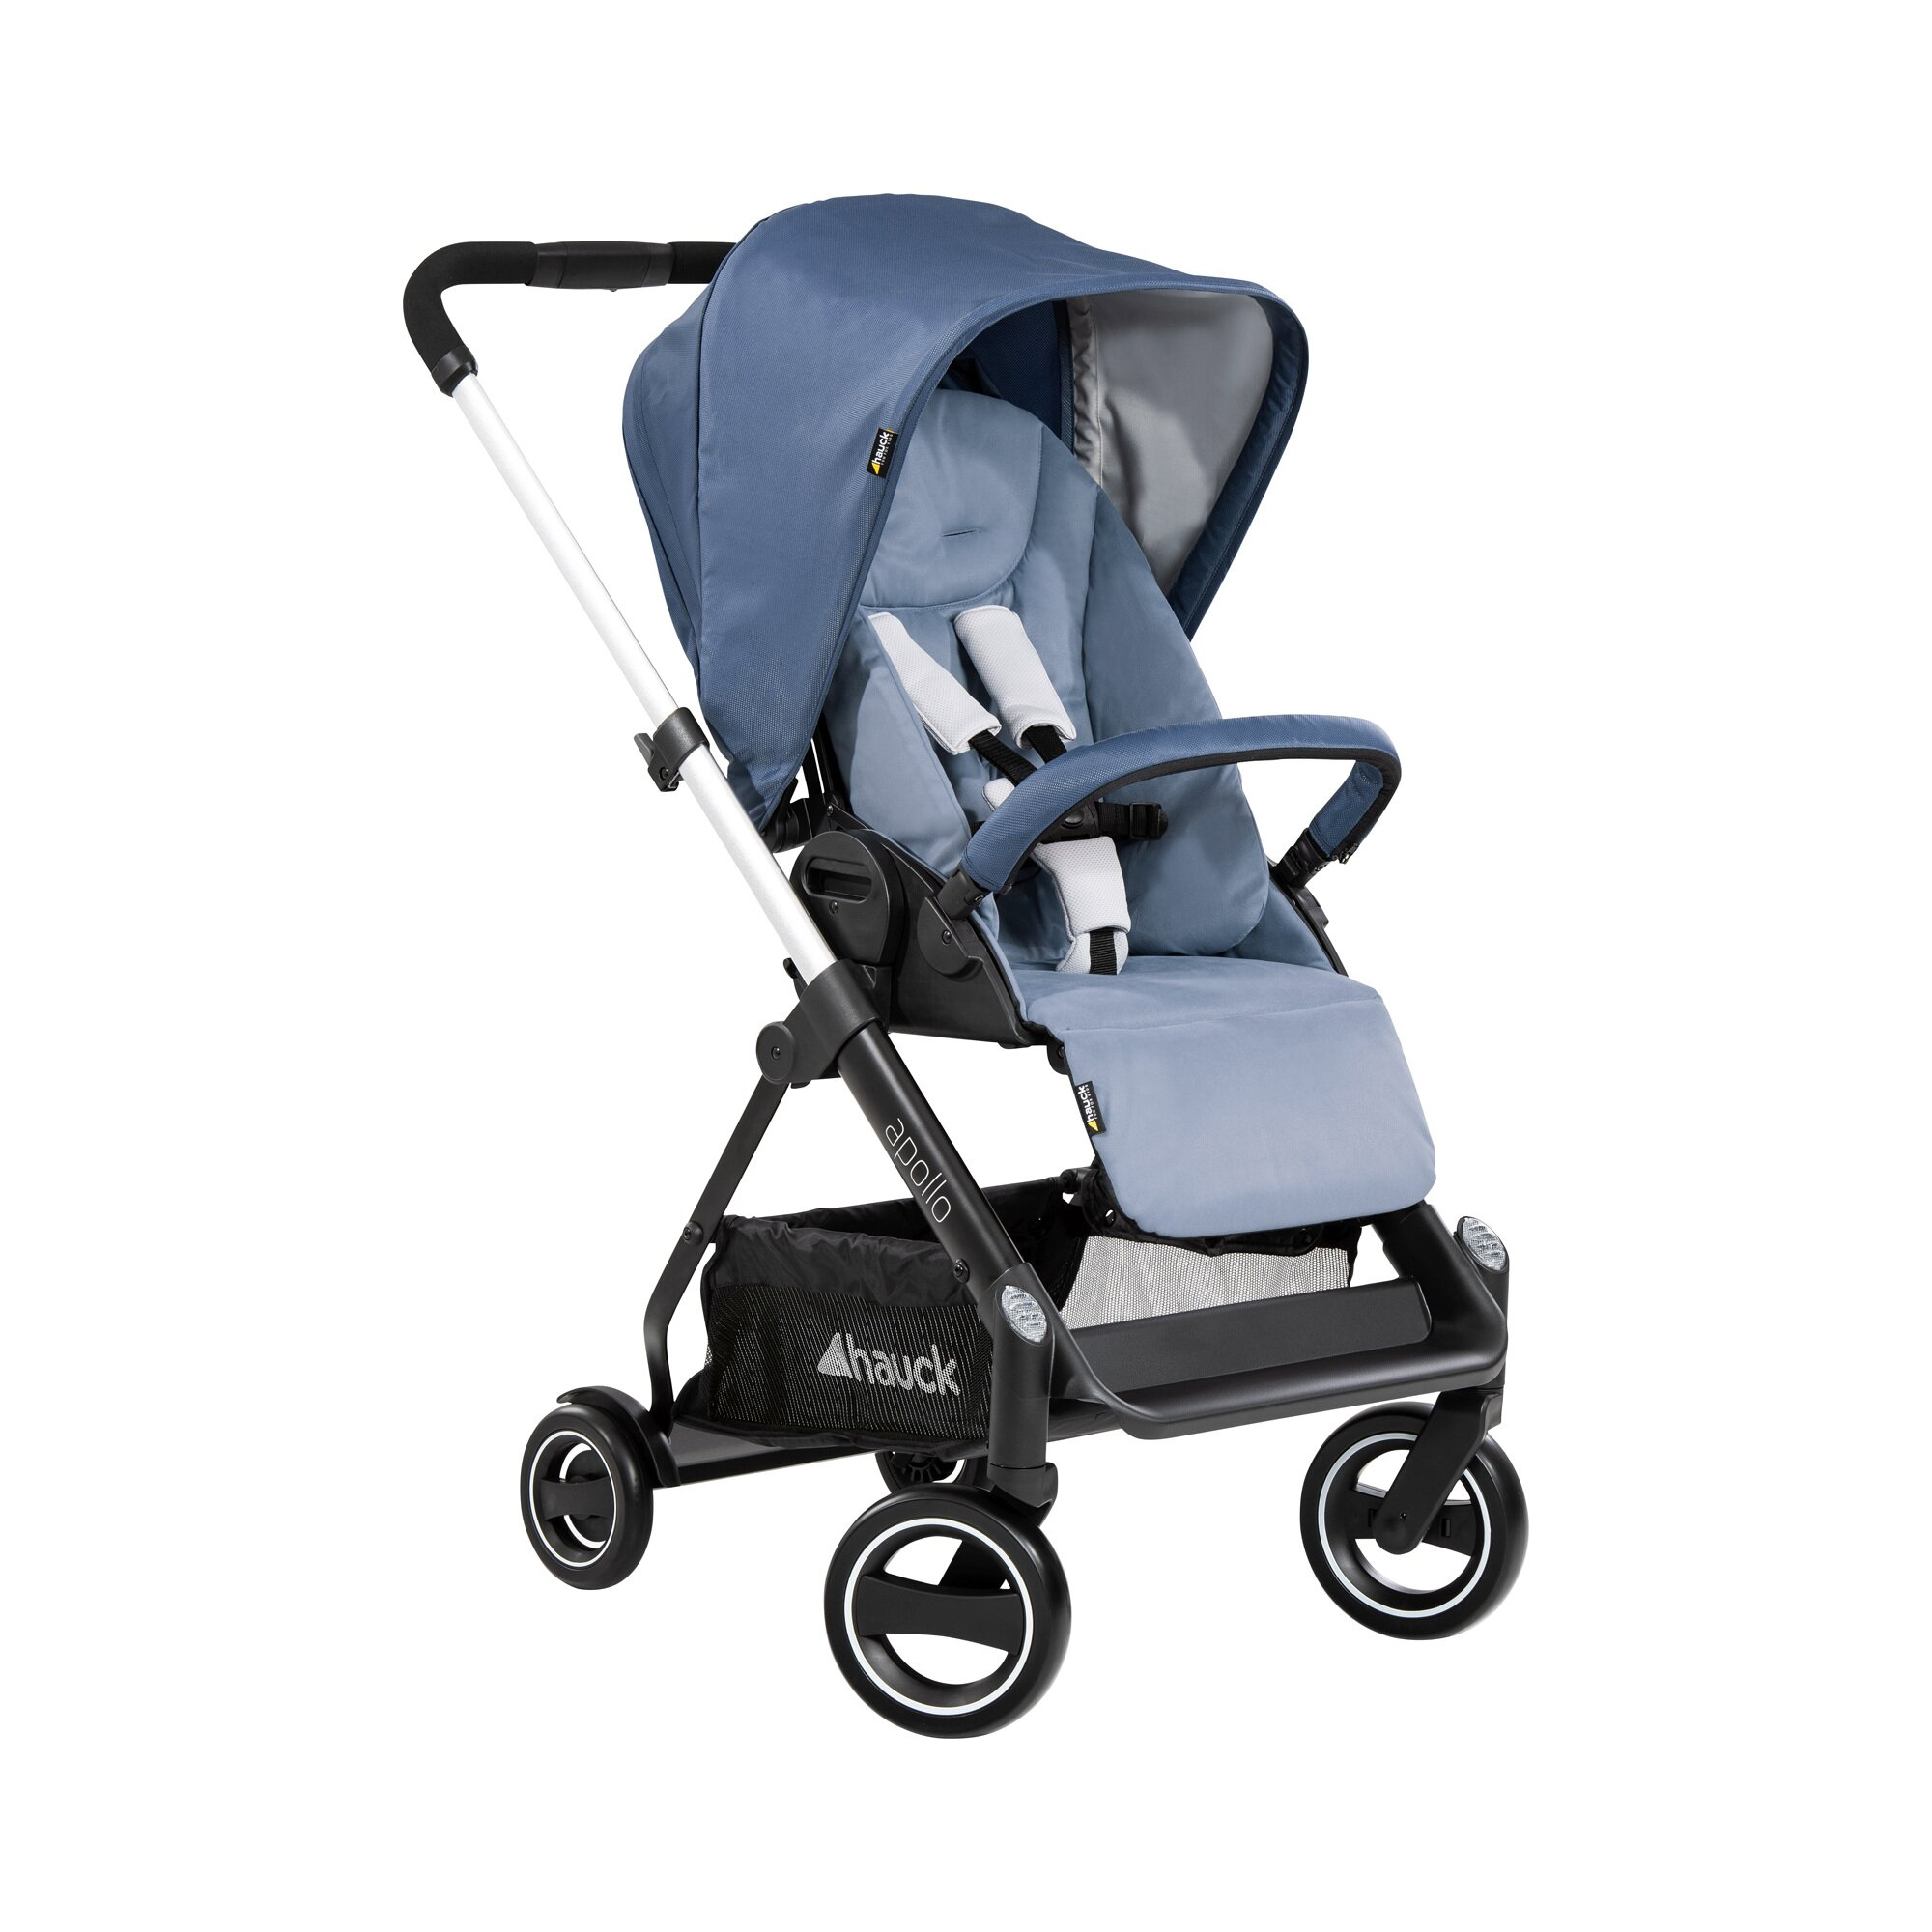 hauck-apollo-kinderwagen-sportwagen-denim